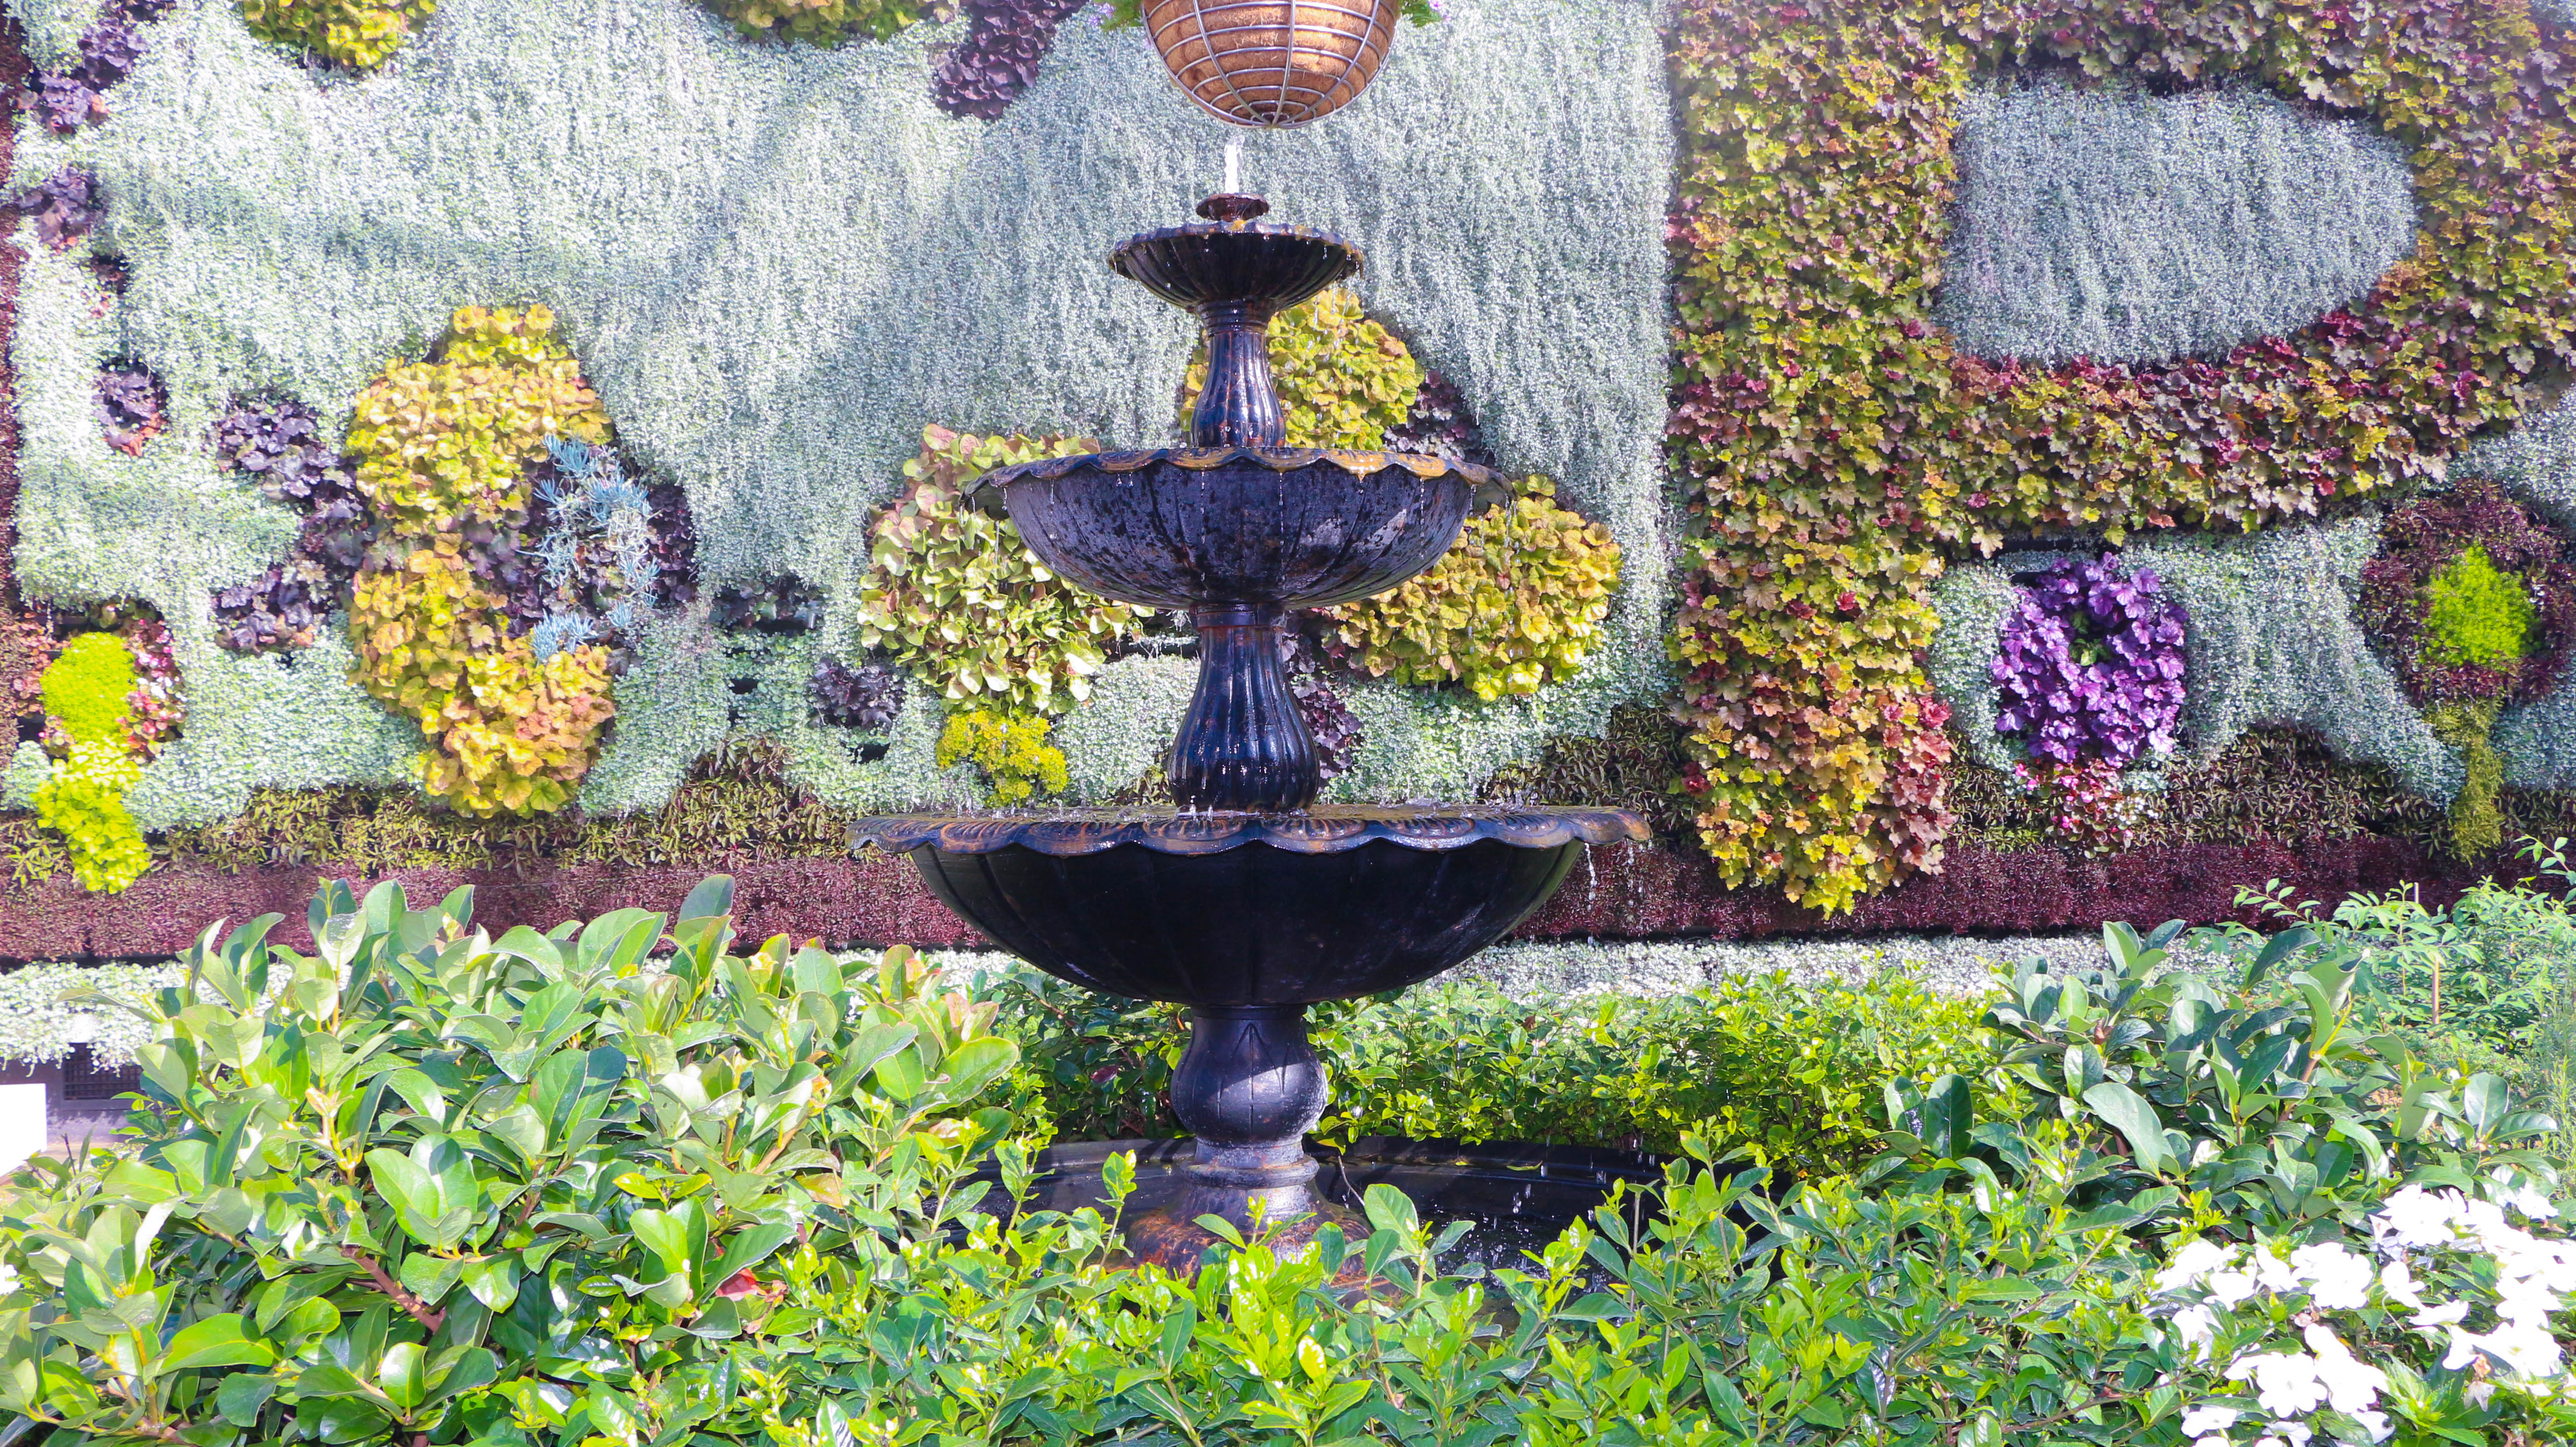 Fountain in the Pollination at the Calyx